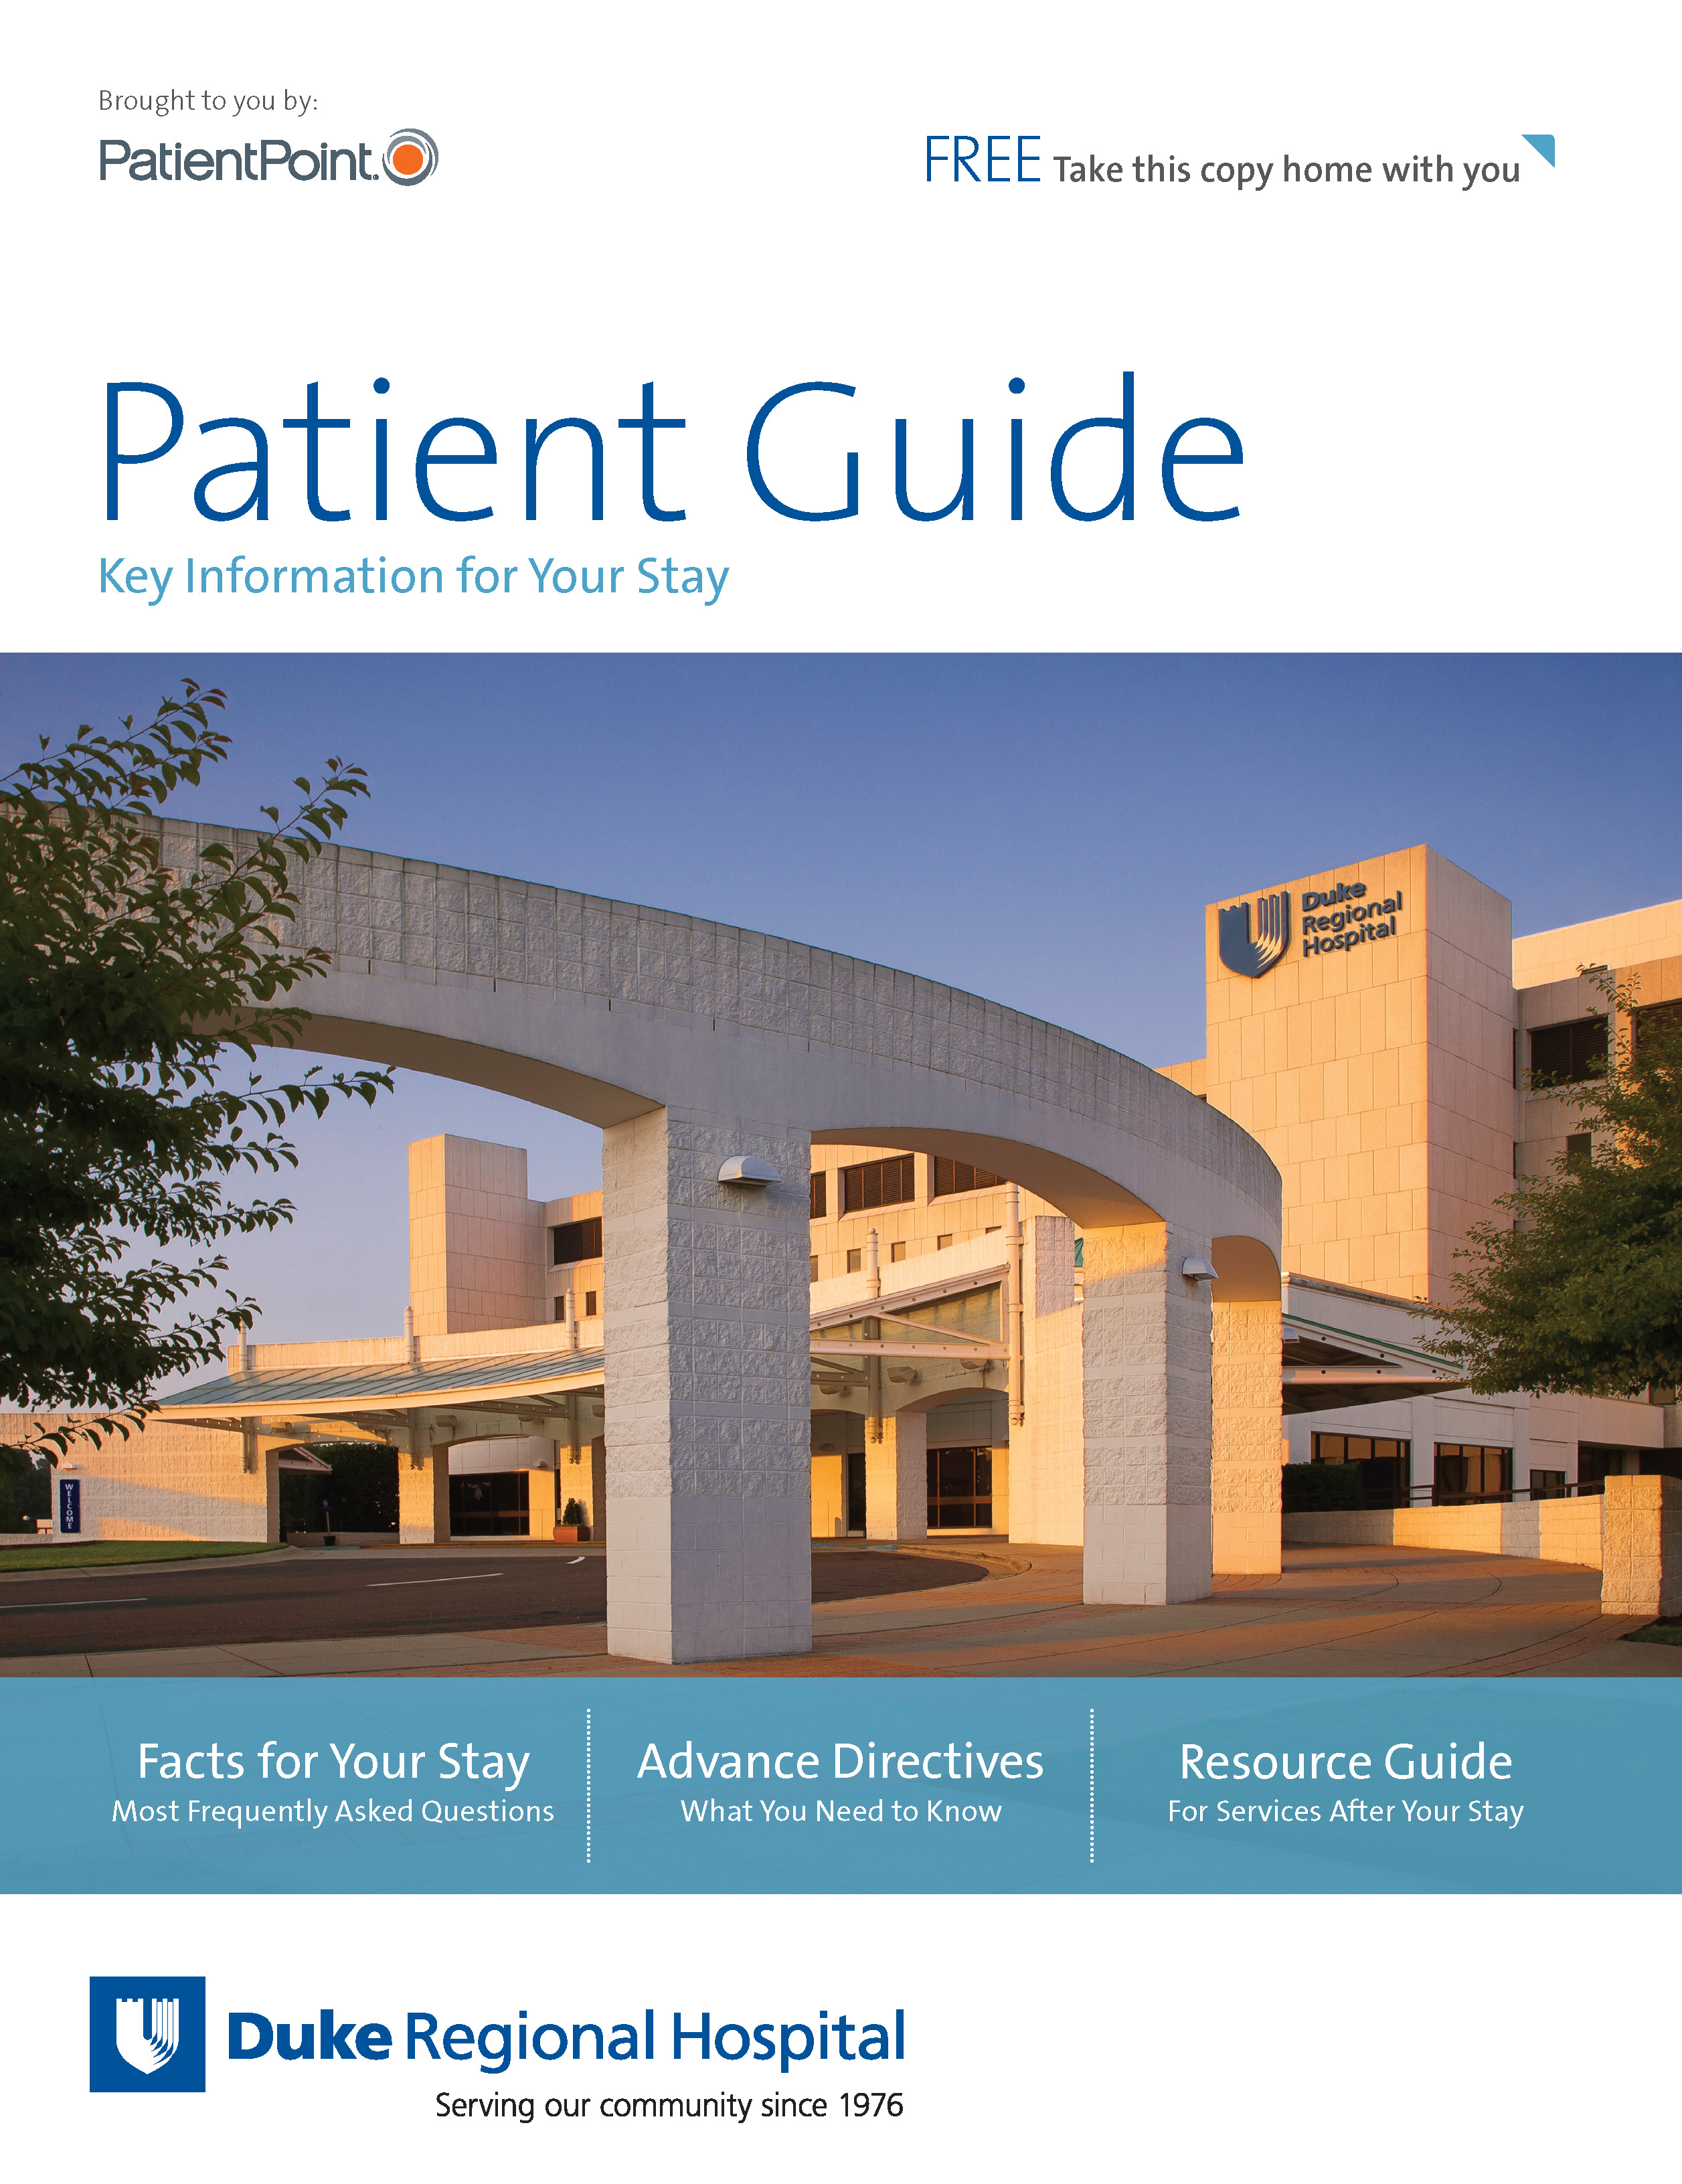 Duke Regional Hospital Patient Guide cover